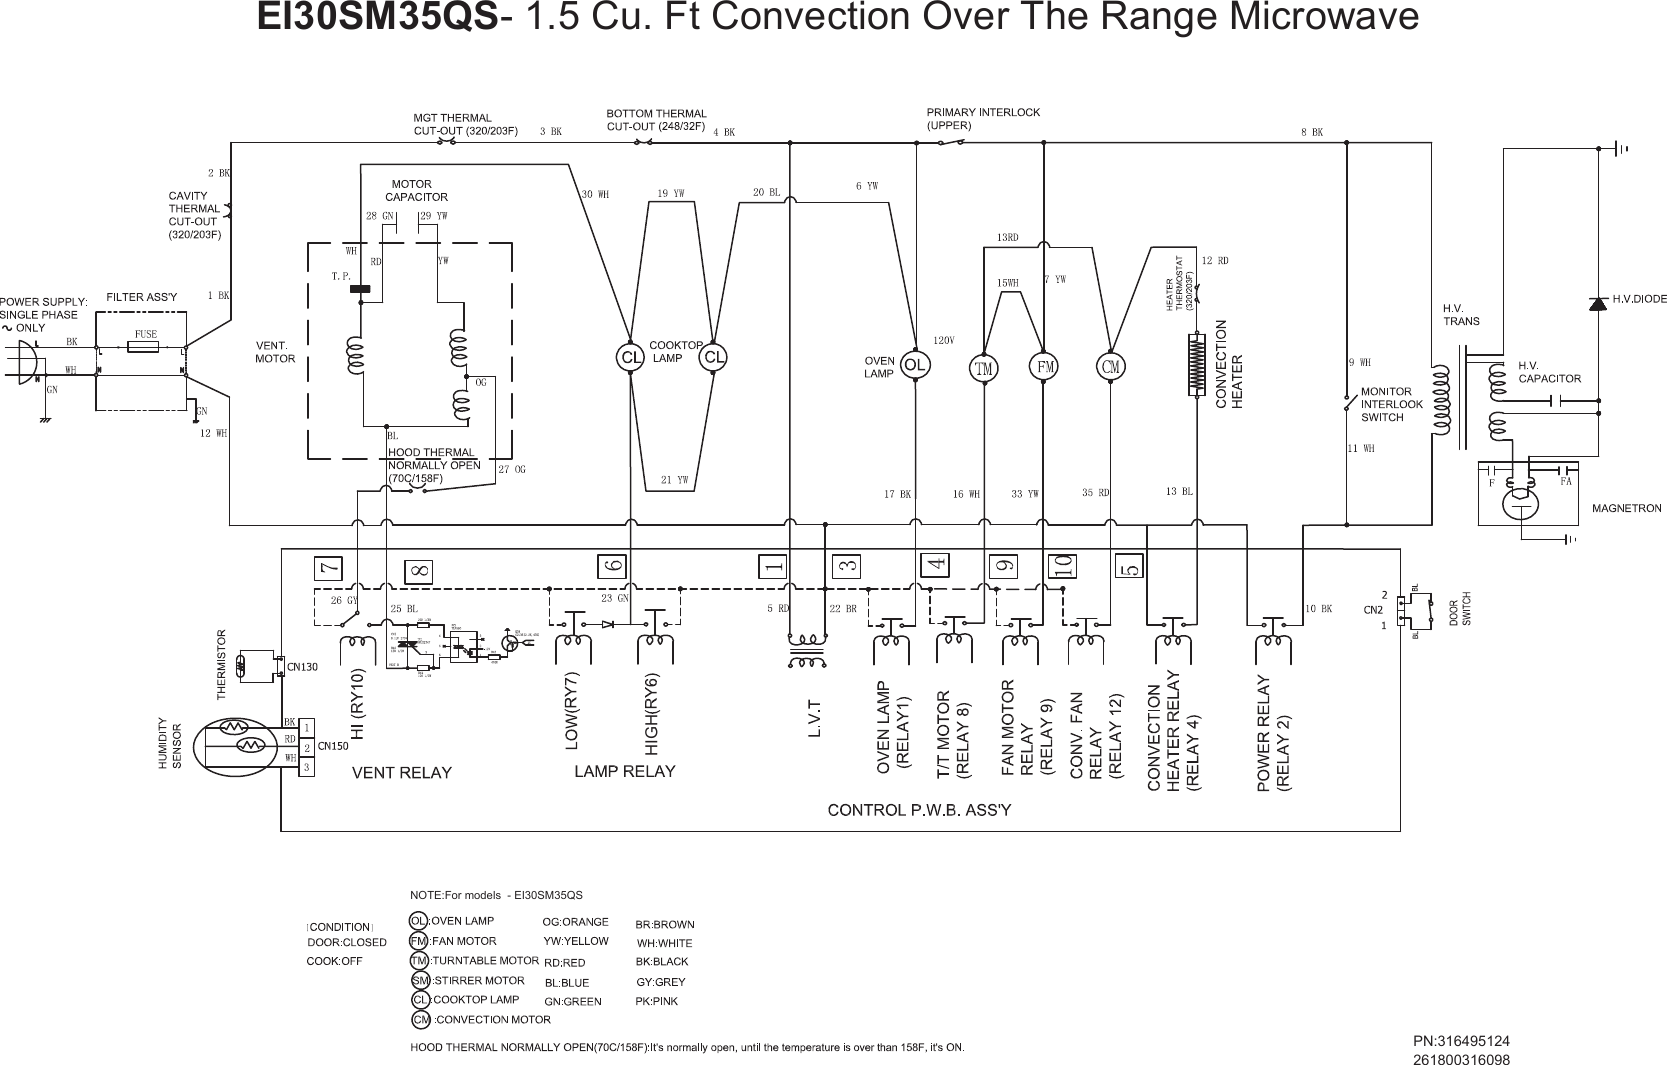 Electrolux 30 Over The Range Convection Microwave Oven Ei30Sm35Qs Wiring  Diagram Manuals.electroluxusa.com_prodinfo_pdf_Springfield_316495124UserManual.wiki